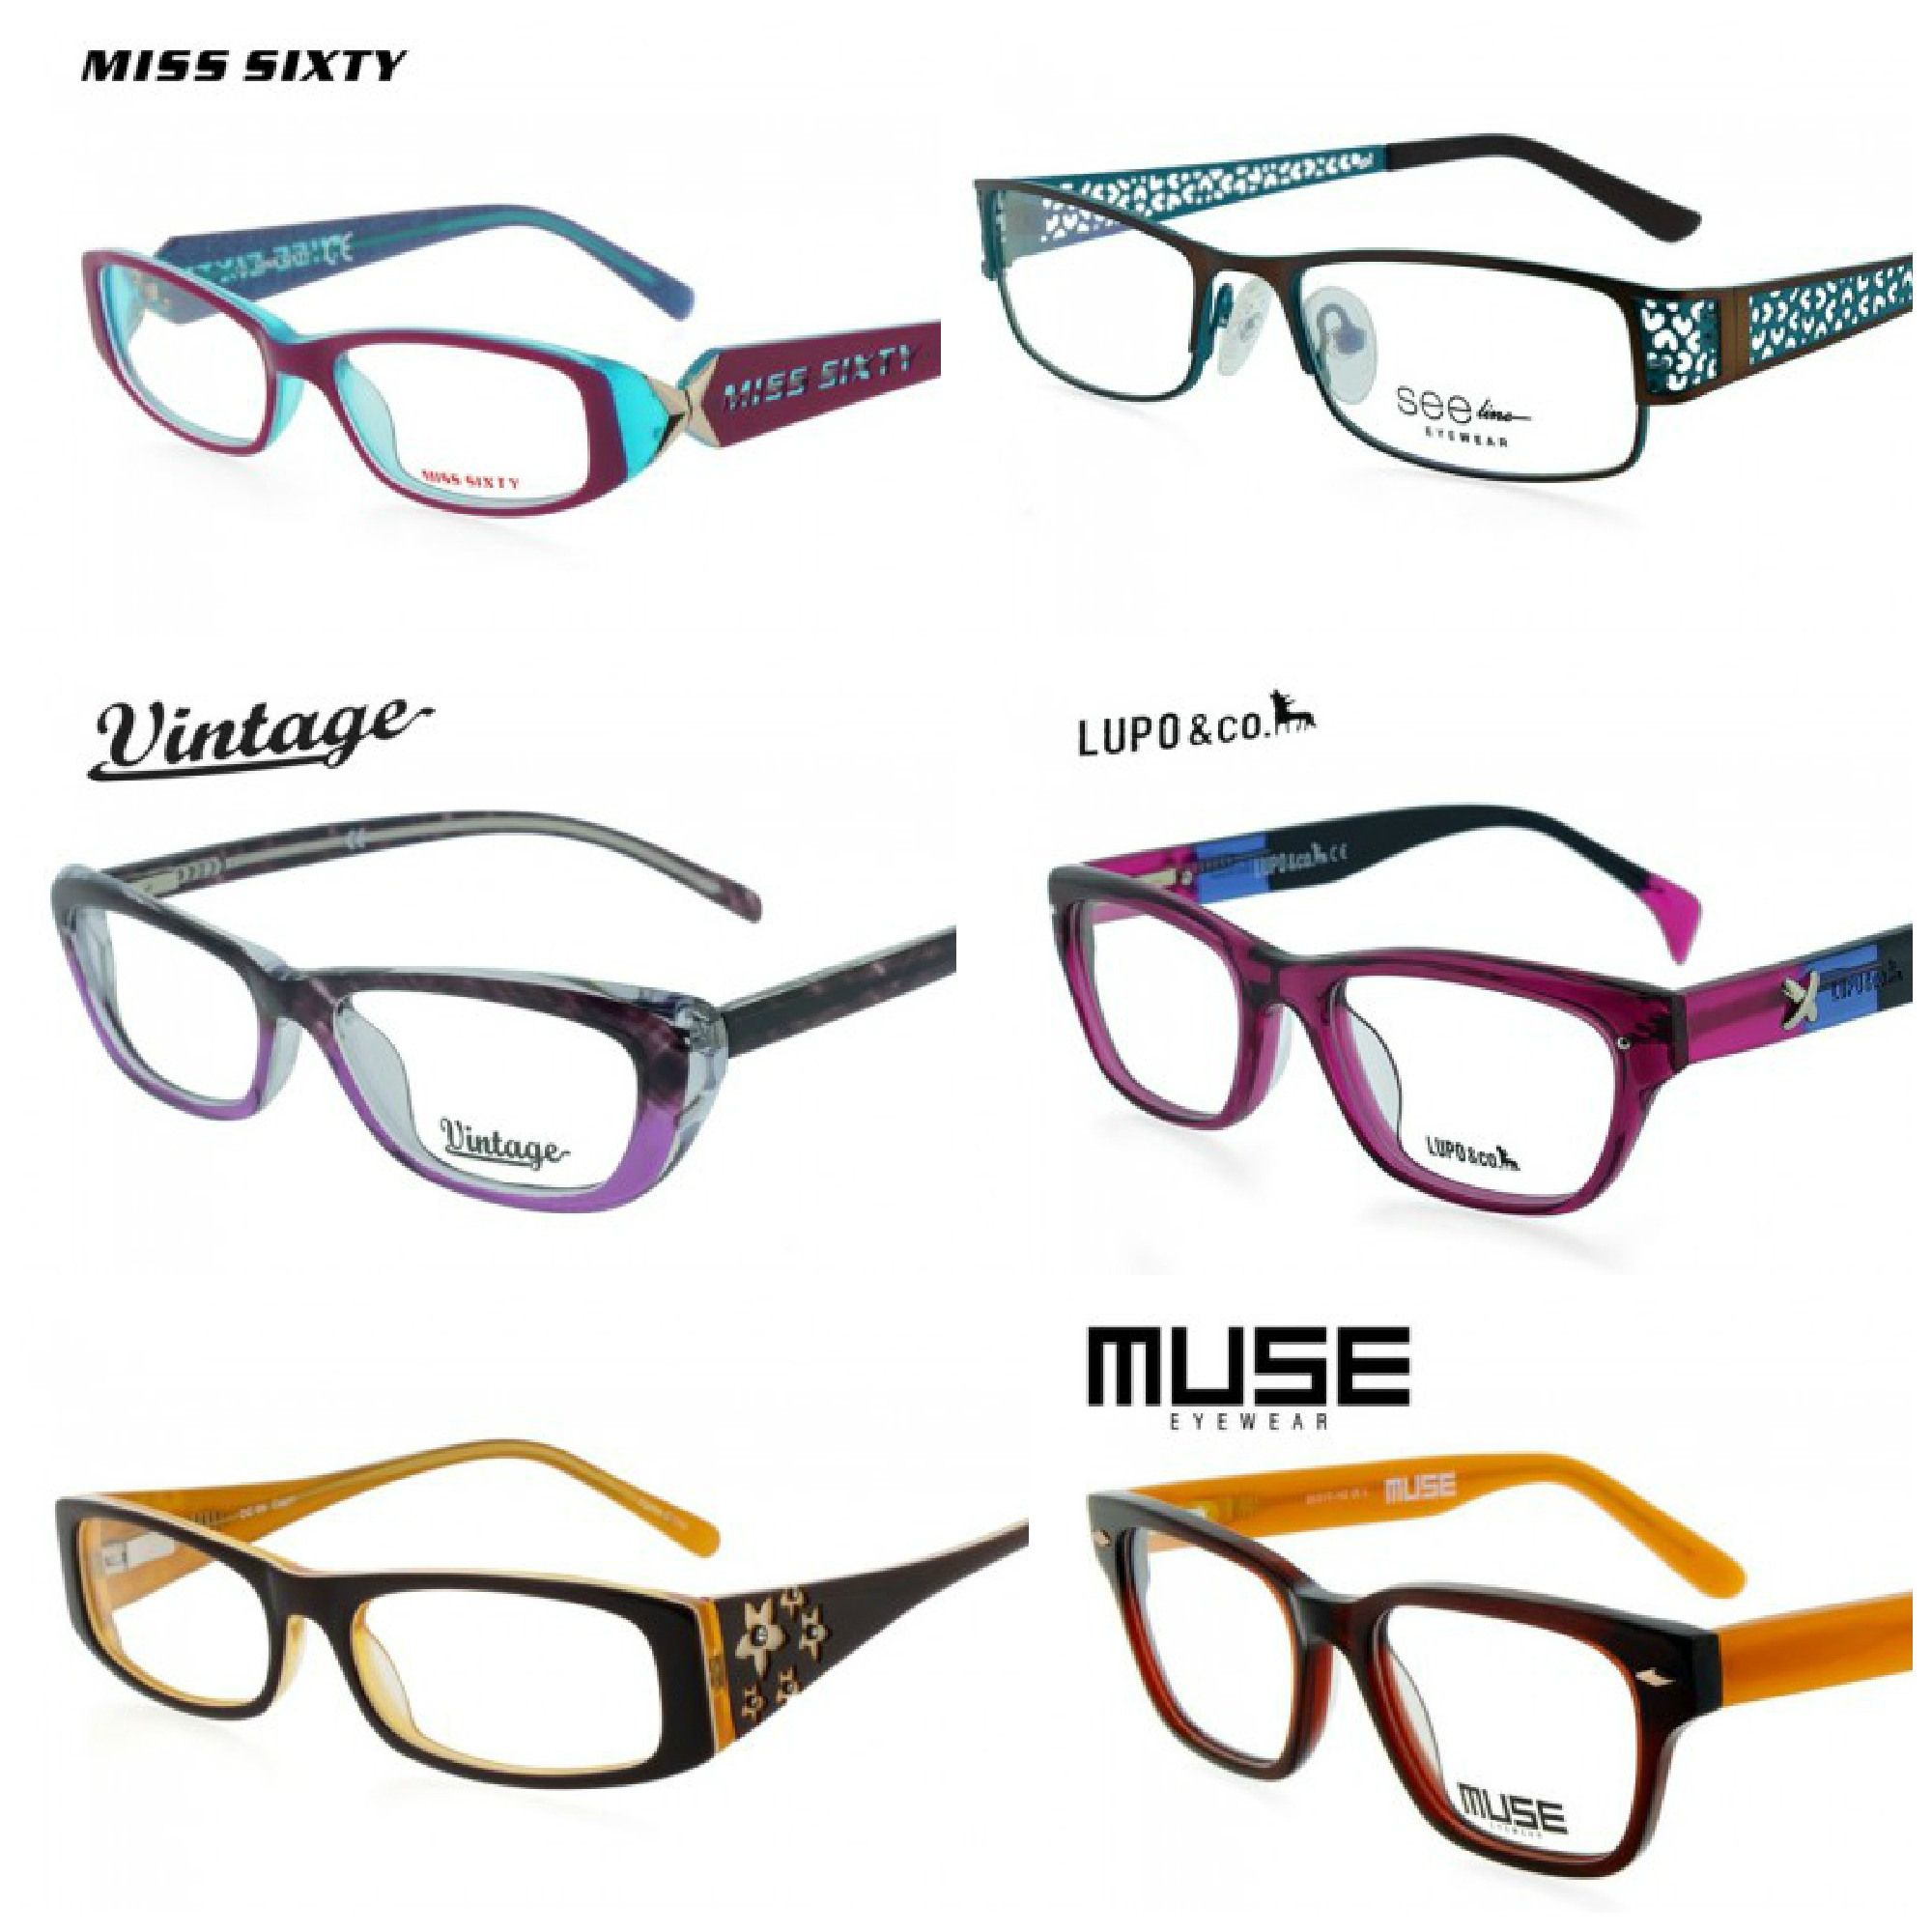 trendy eyeglasses fun affordable order online free shipping discount code ships anywhere in the world glassesusacom eye glasses pinterest